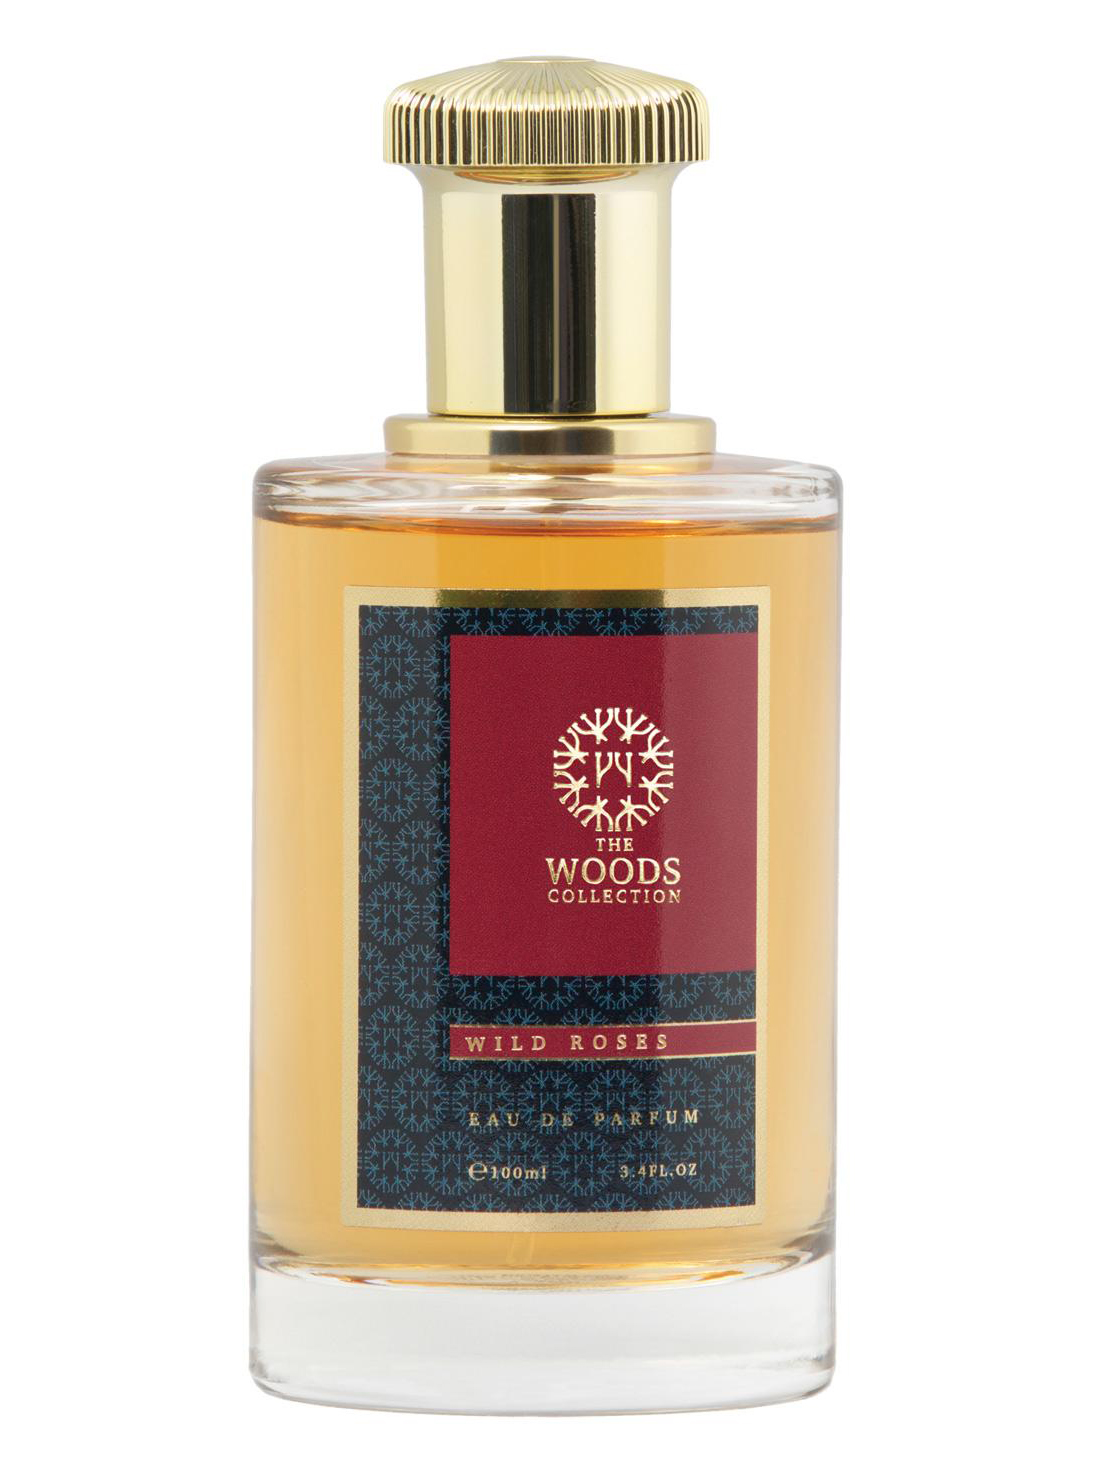 wild roses the woods collection perfume a new fragrance. Black Bedroom Furniture Sets. Home Design Ideas